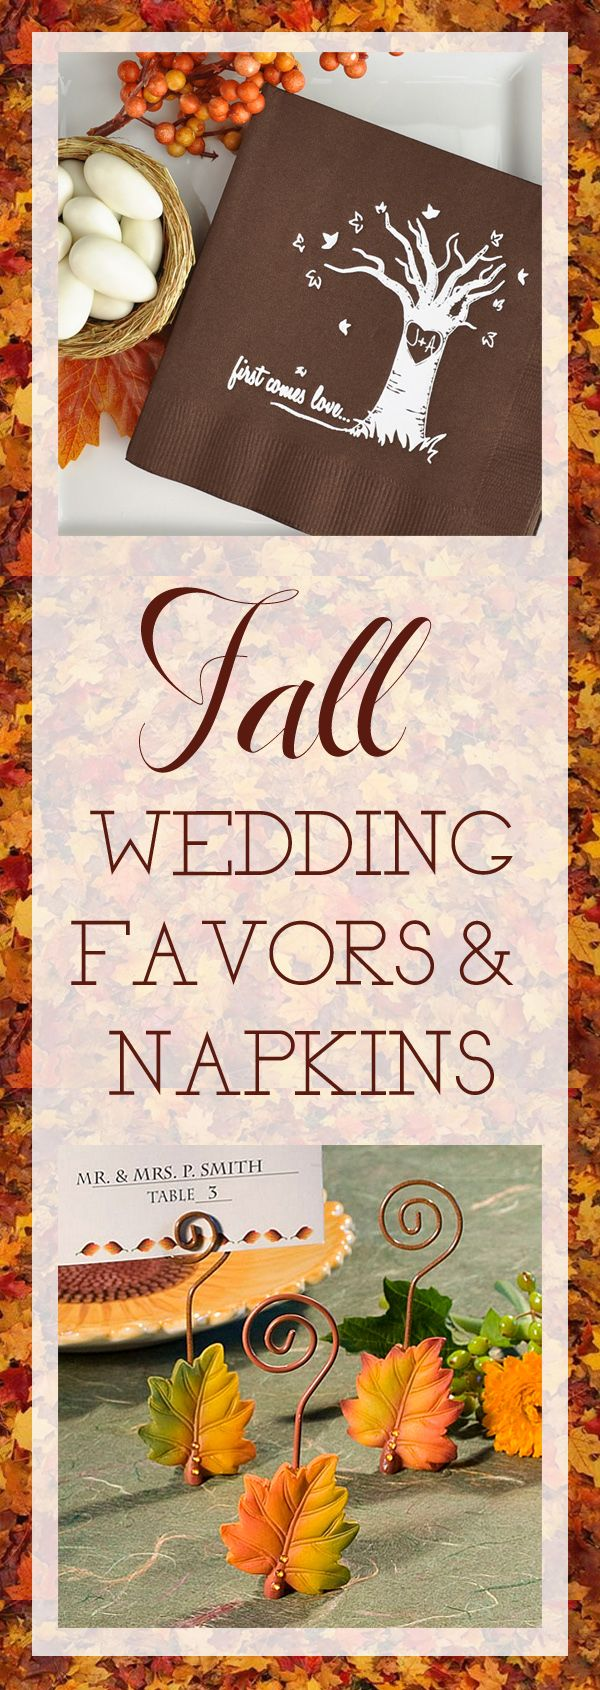 fall weddings fall wedding favors best images about Fall Weddings on Pinterest Receptions Favor boxes and Pumpkins